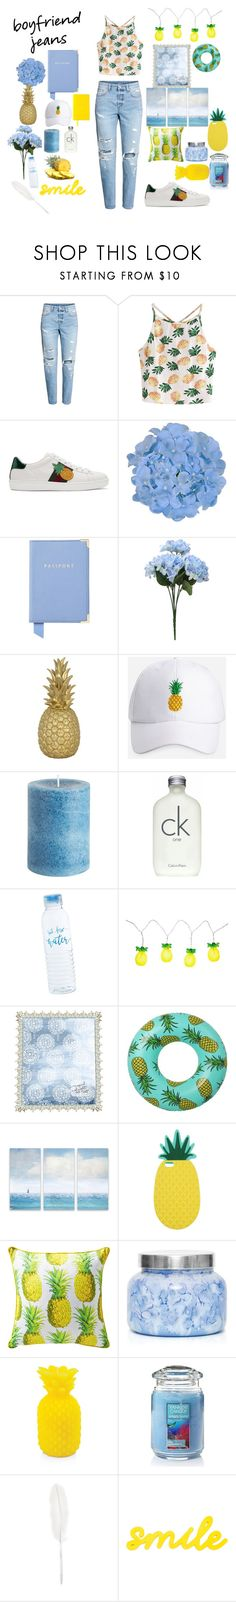 """""""Boyfriend Jeans👖 & pineapple🍍"""" by aik-lin ❤ liked on Polyvore featuring H&M, WithChic, Gucci, Aspinal of London, Goodnight Light, Ashley Stewart, Pier 1 Imports, Calvin Klein, Sunnylife and Enchanté"""